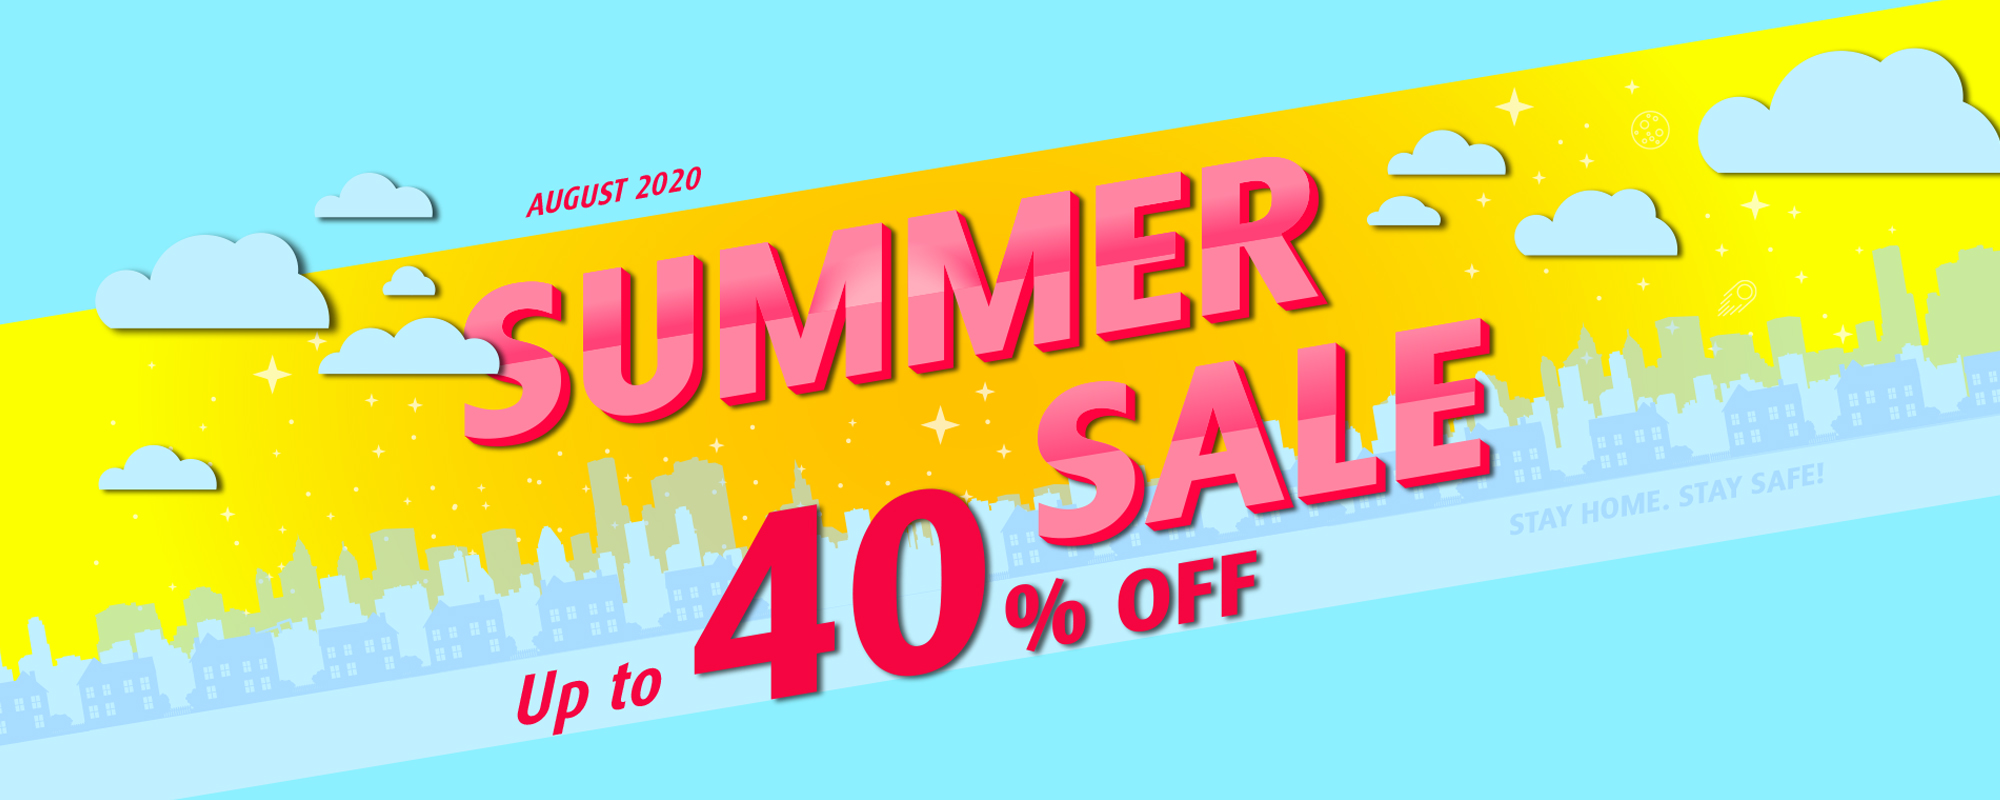 summer-sale-up-to-40-percent-mobile-banner